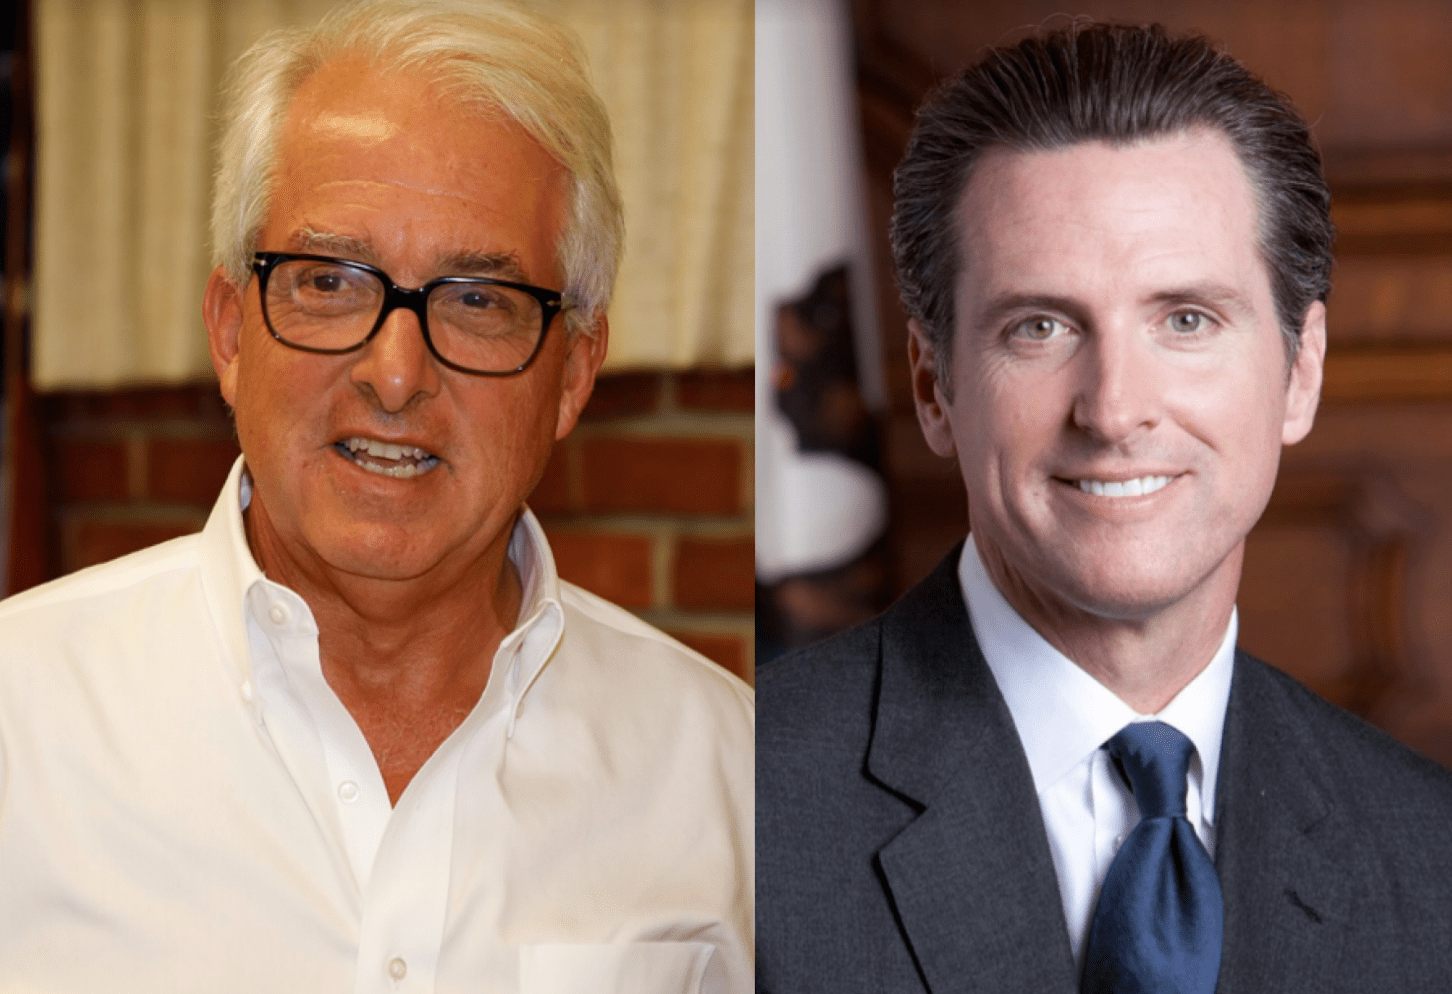 Photo of gubernatorial candidates John Cox, left, and Gavin Newsom, right. (Left image by Tommy Lee Kreger, license CC by 2.0. and right photo courtesy of the state of California.)